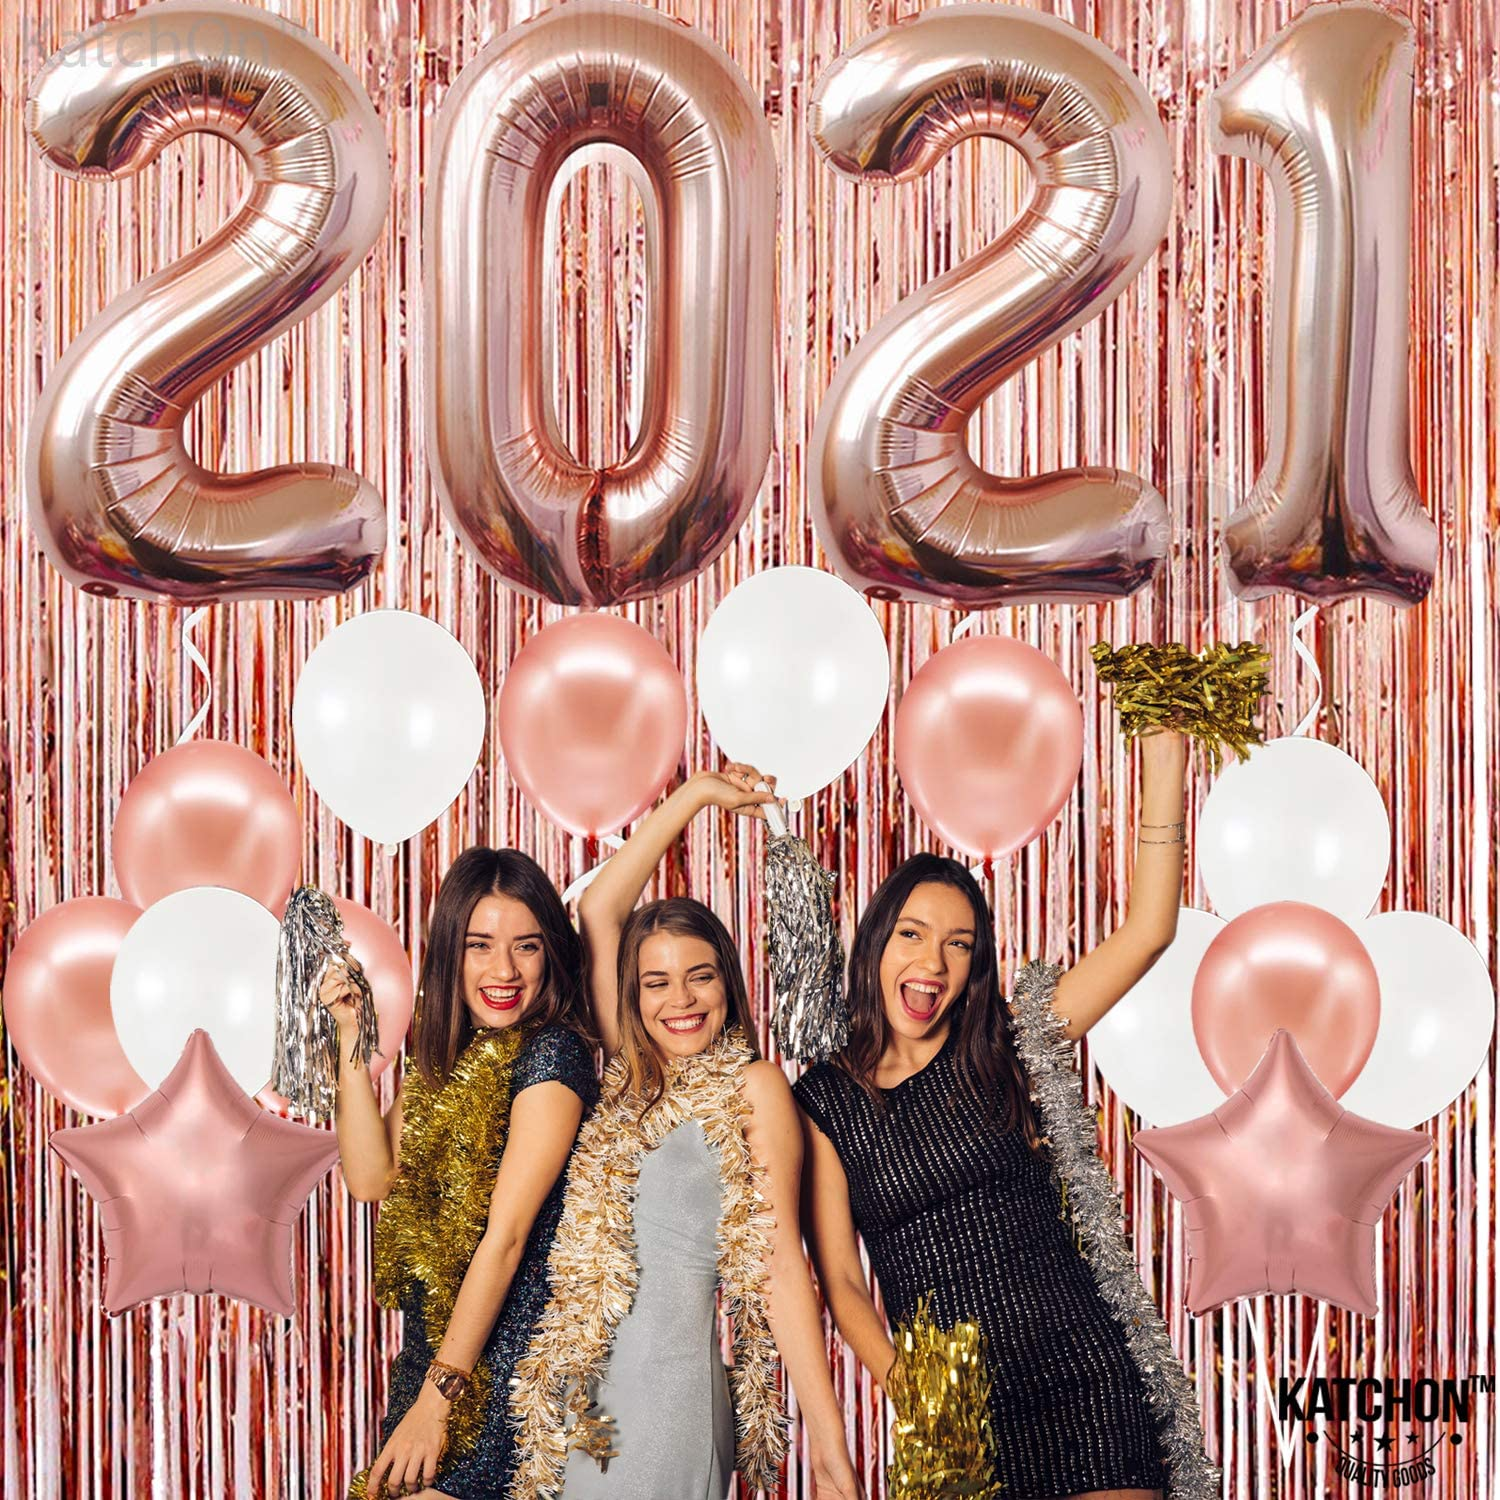 Amazon Com Rose Gold 2021 Balloons For New Years Eve Rose Gold Metallic Foil Fringe New Year Backdrop Nye 2021 Rose Gold Star Balloons New Years Eve Party Supplies 2021